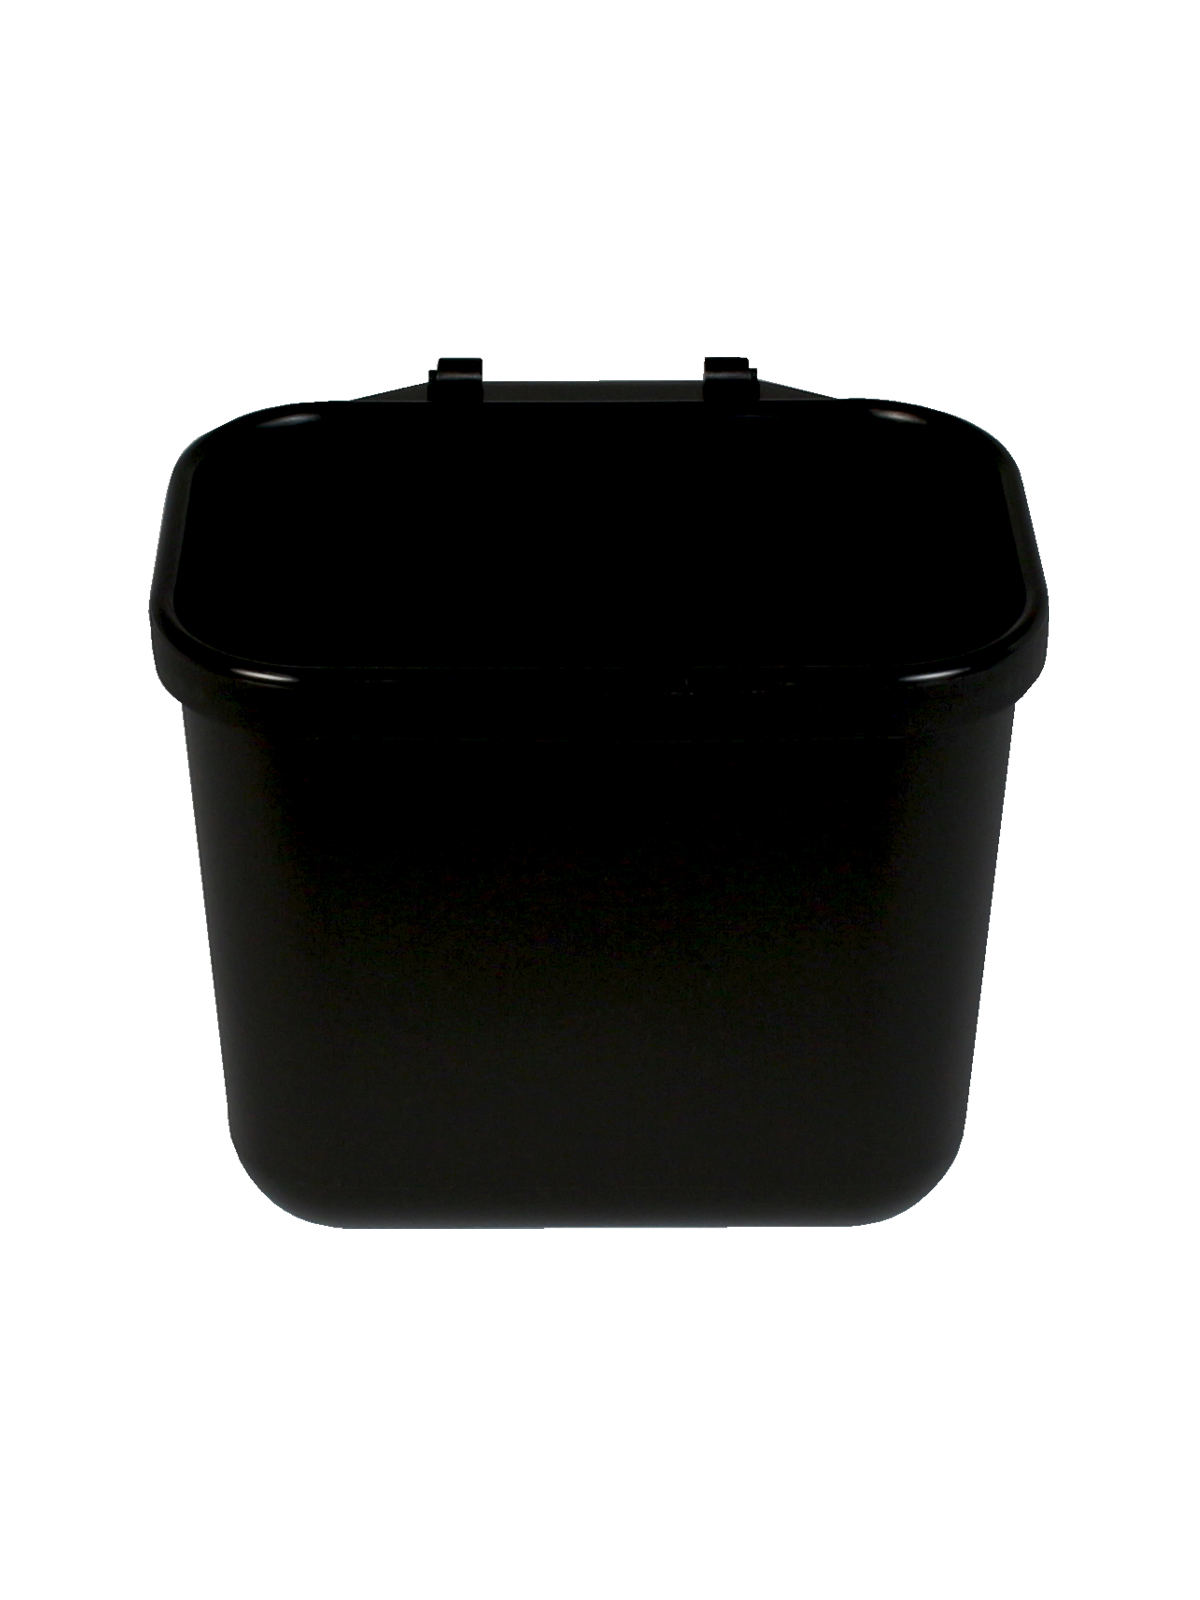 HANGING WASTE BASKET - Single - Body - Black